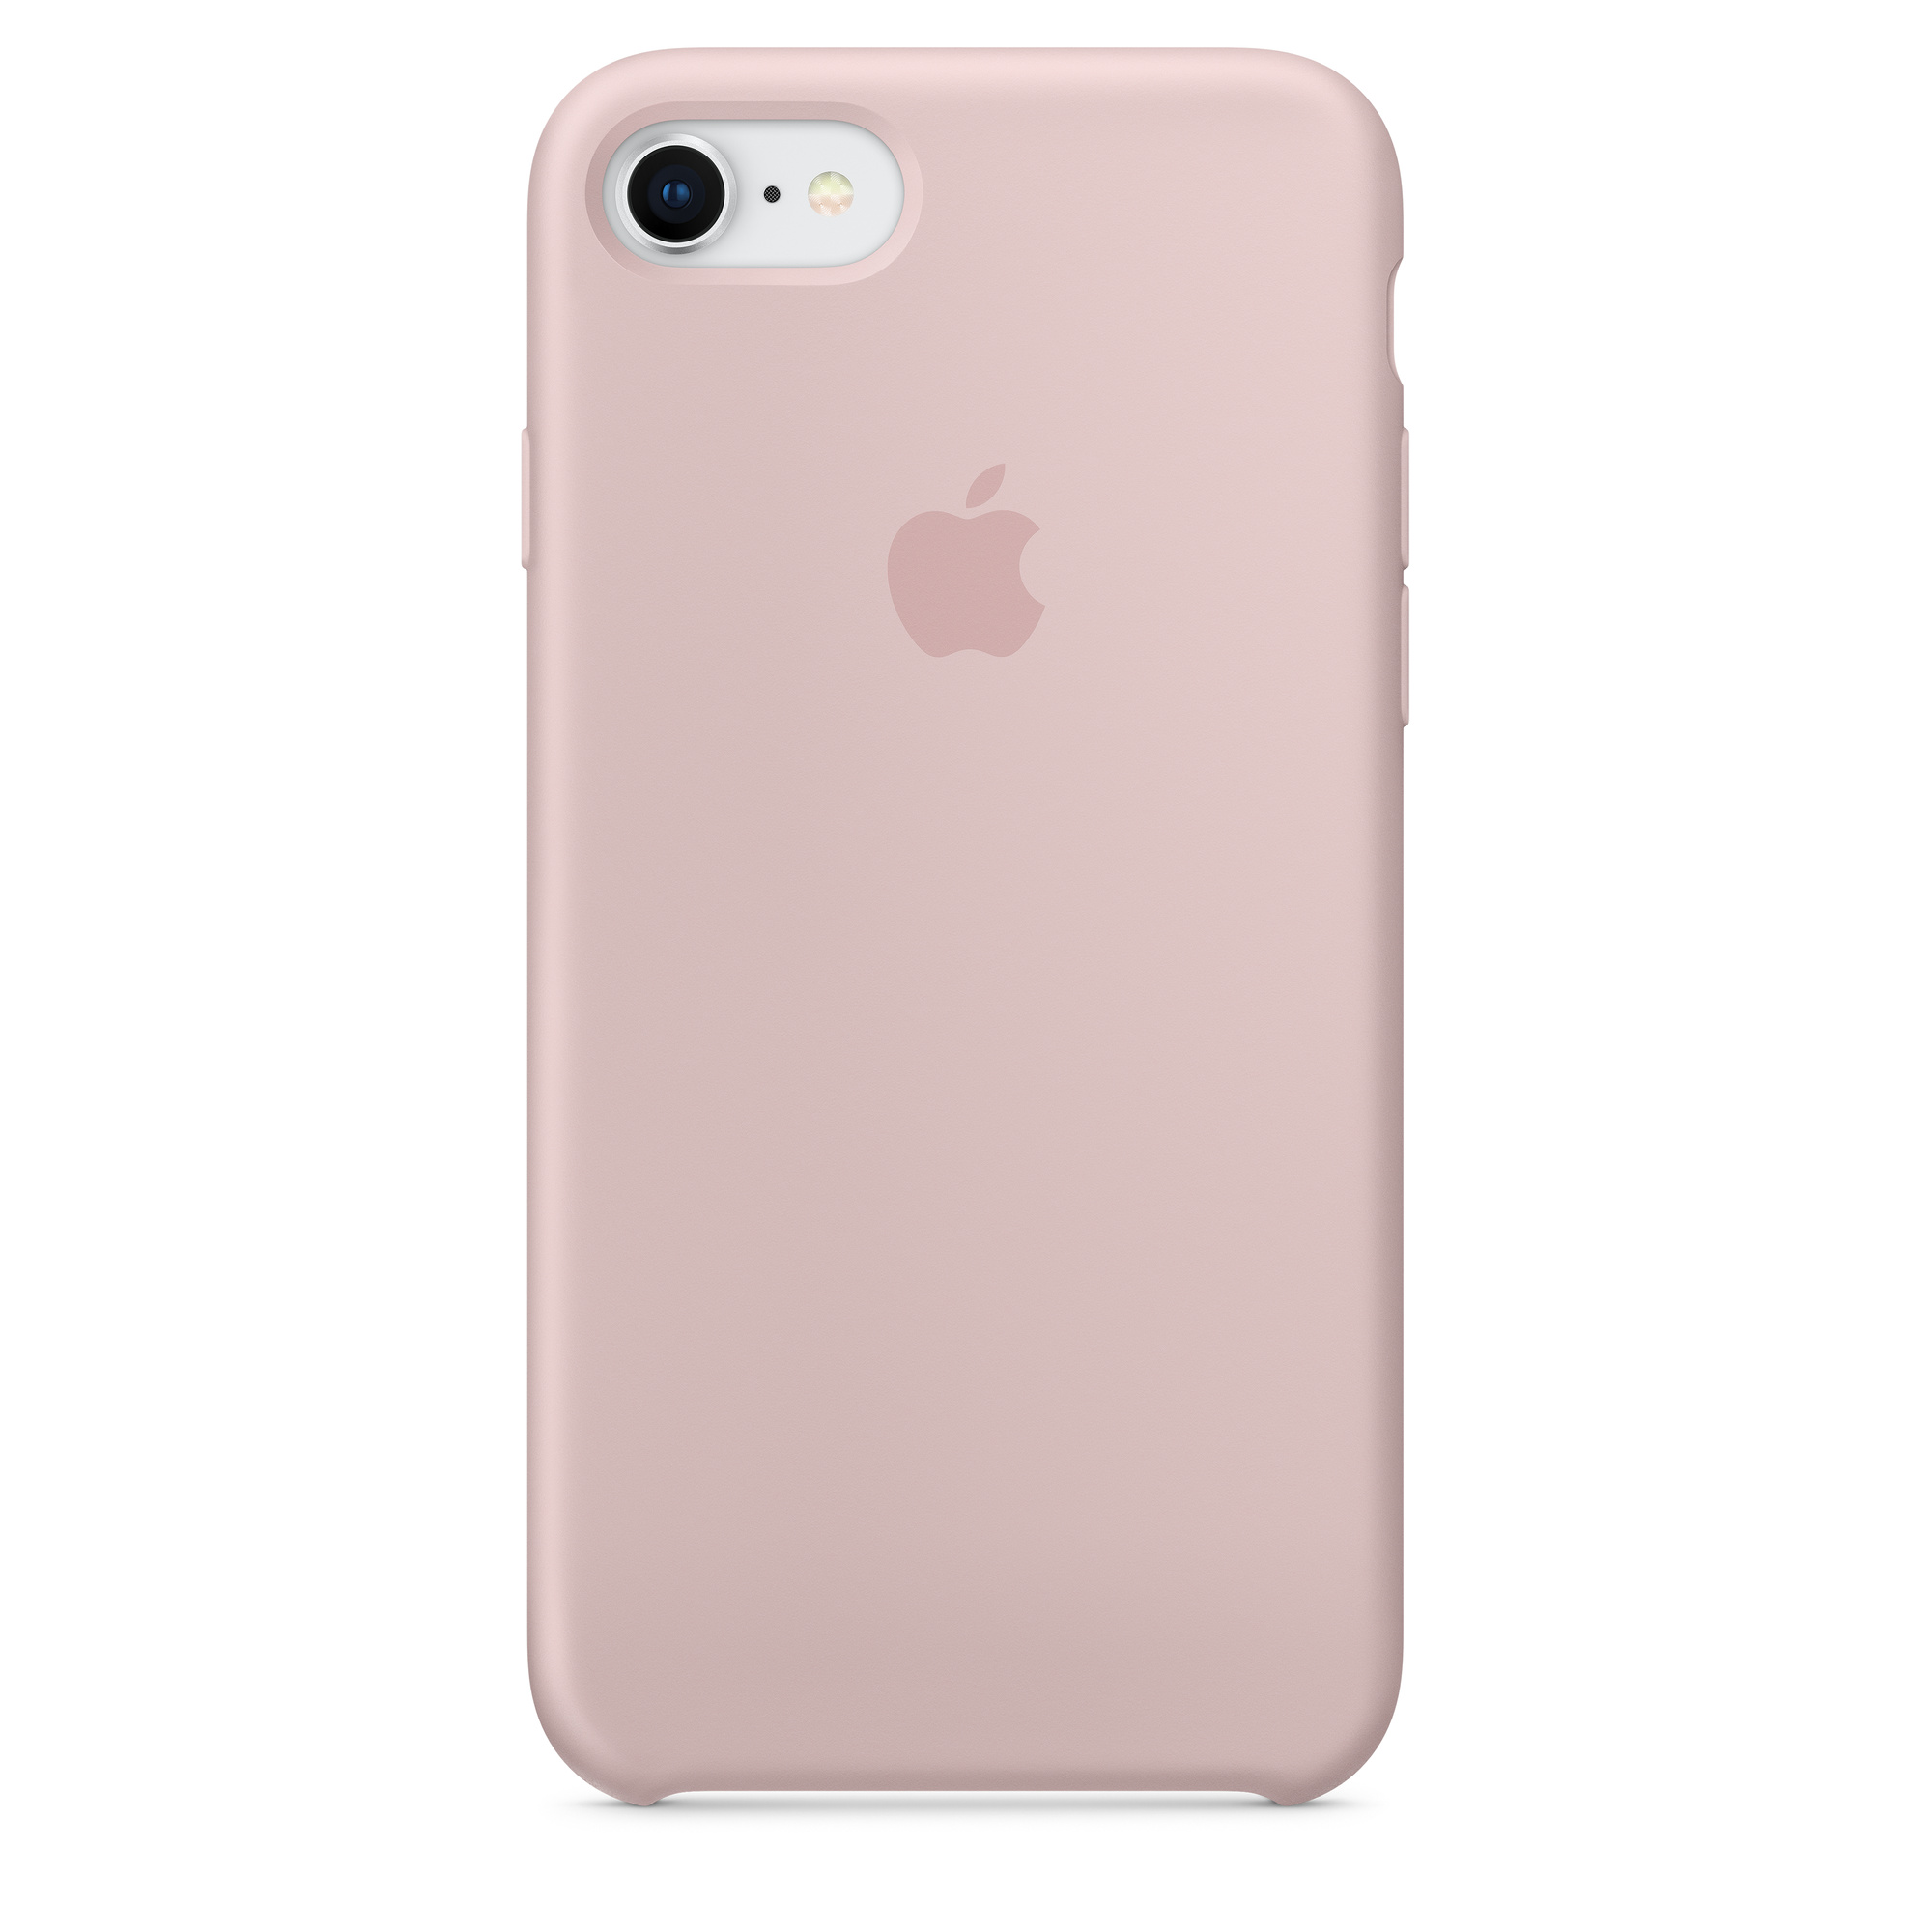 reputable site 04d94 60f8c iPhone 8 / 7 Silicone Case - Pink Sand